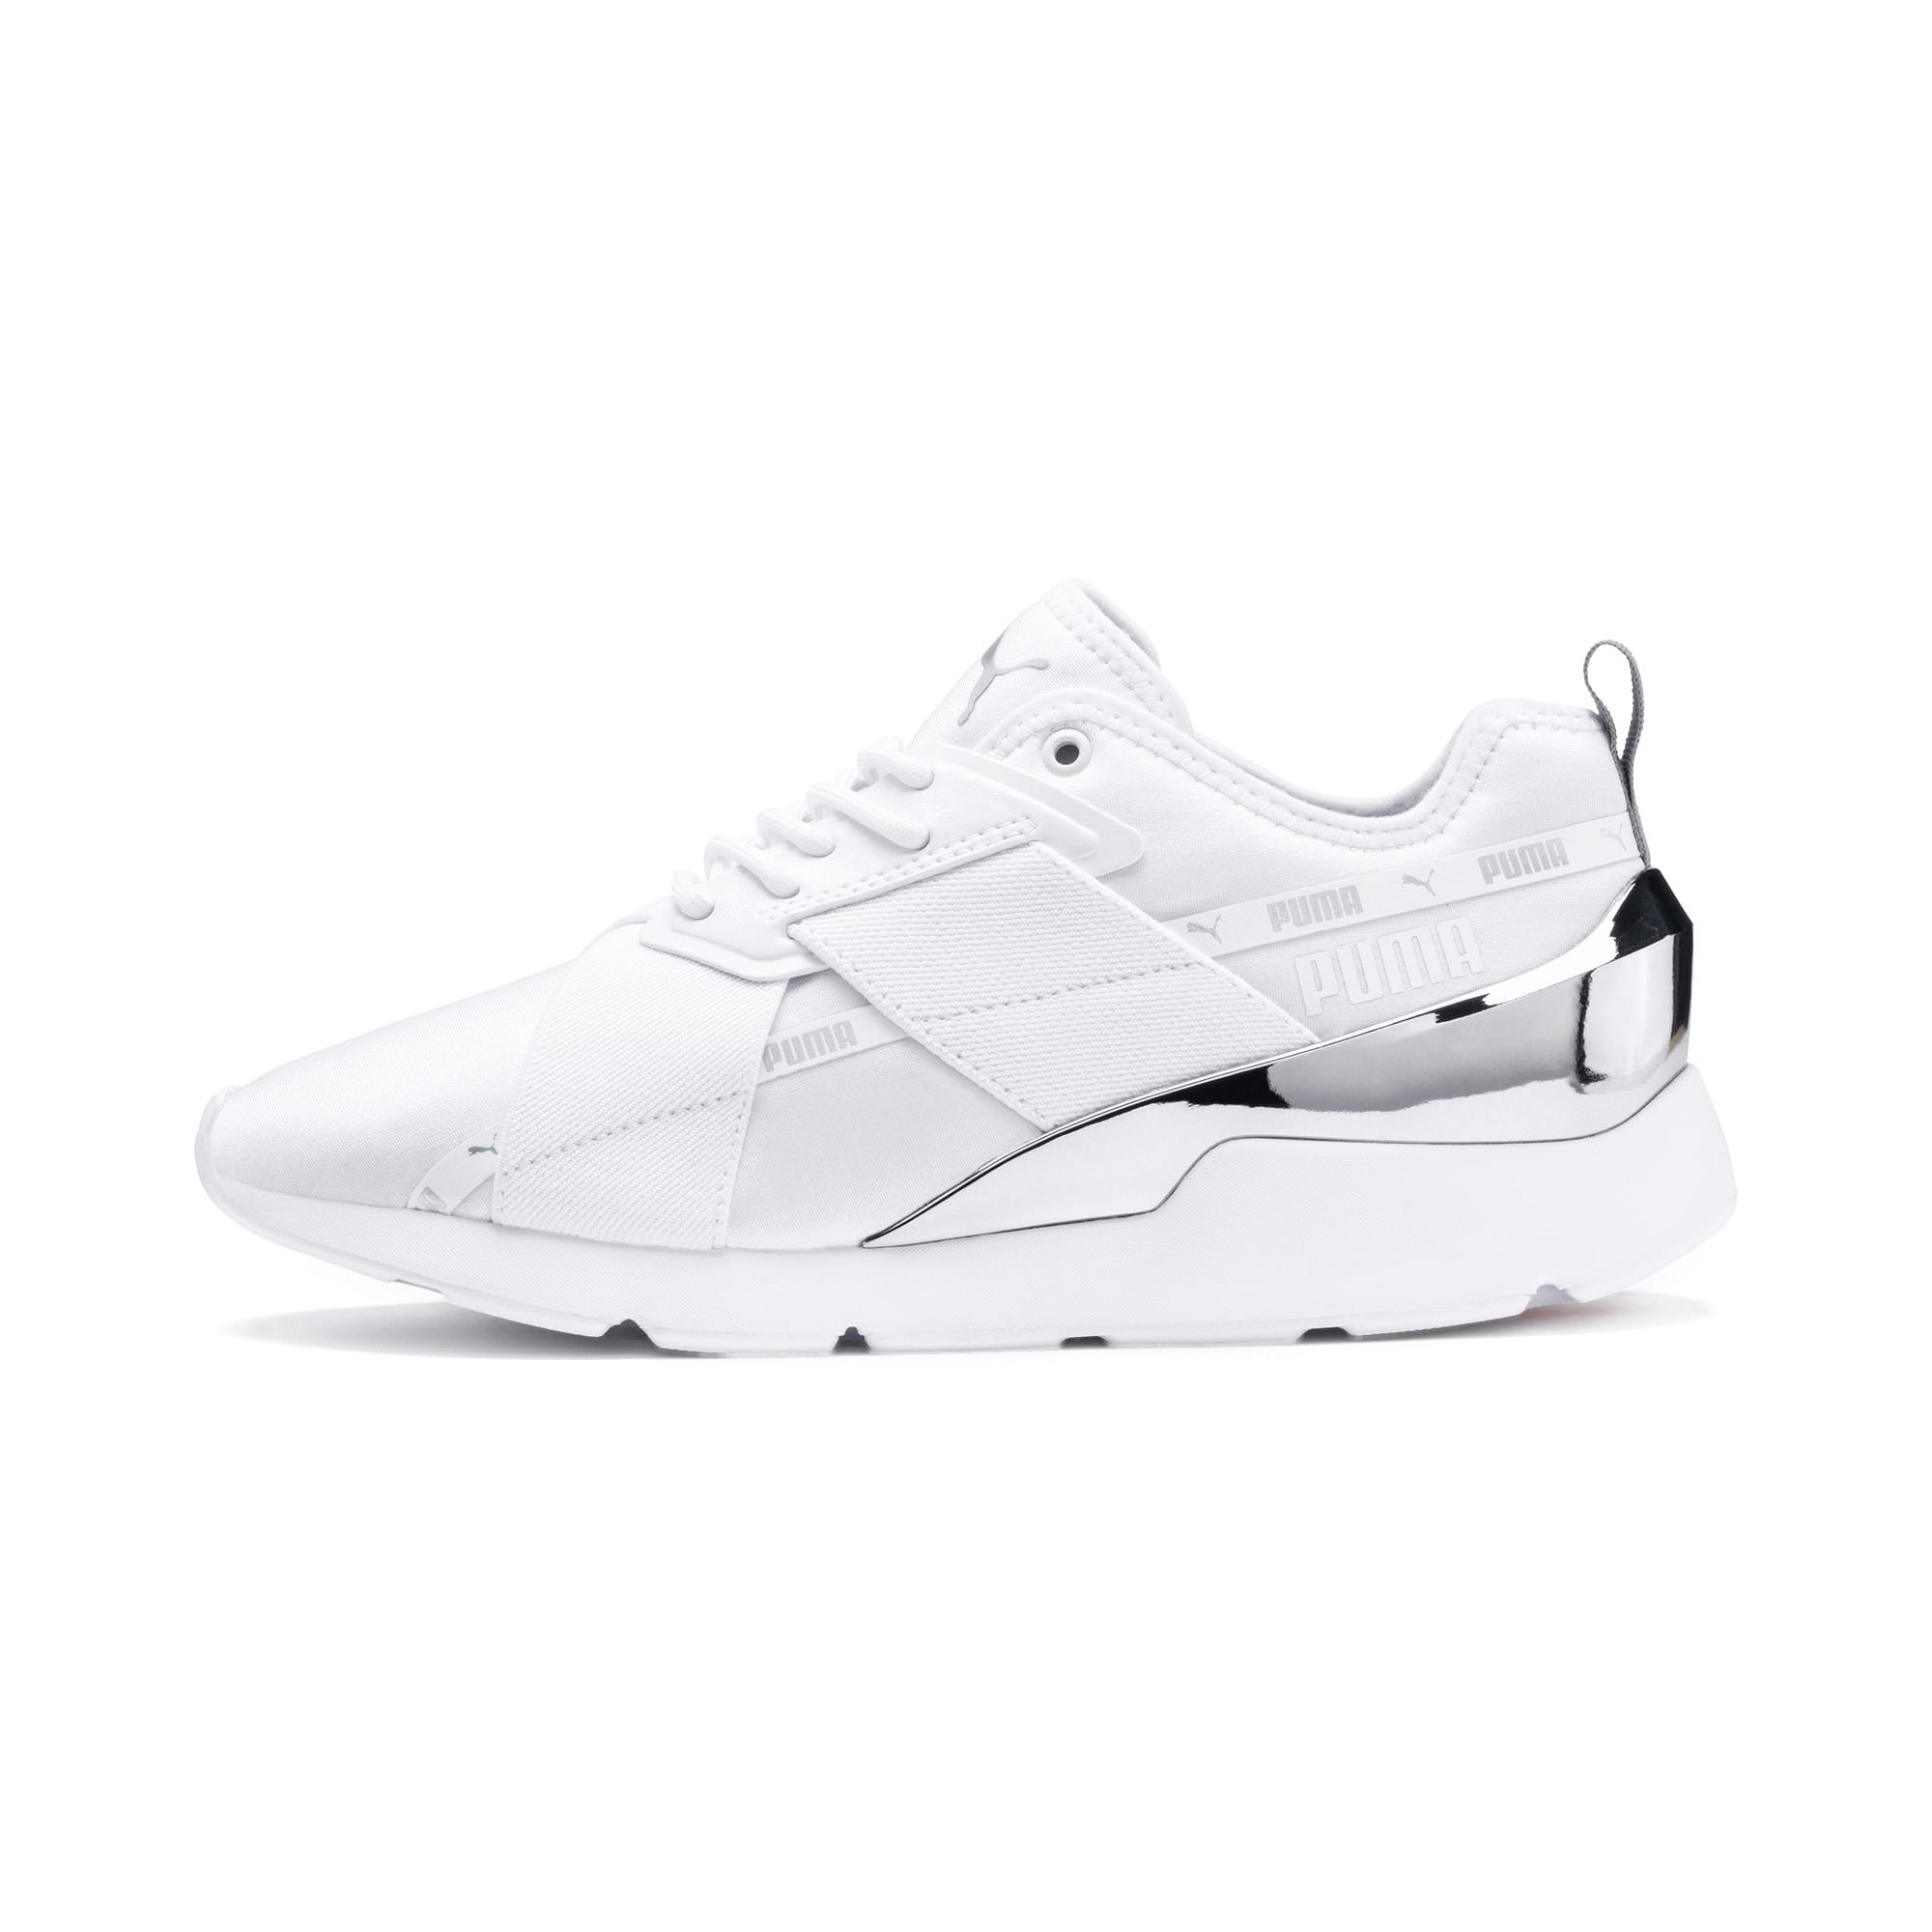 Anteprima 1 di Muse X-2 Metallic Women's Trainers, Puma White, medio